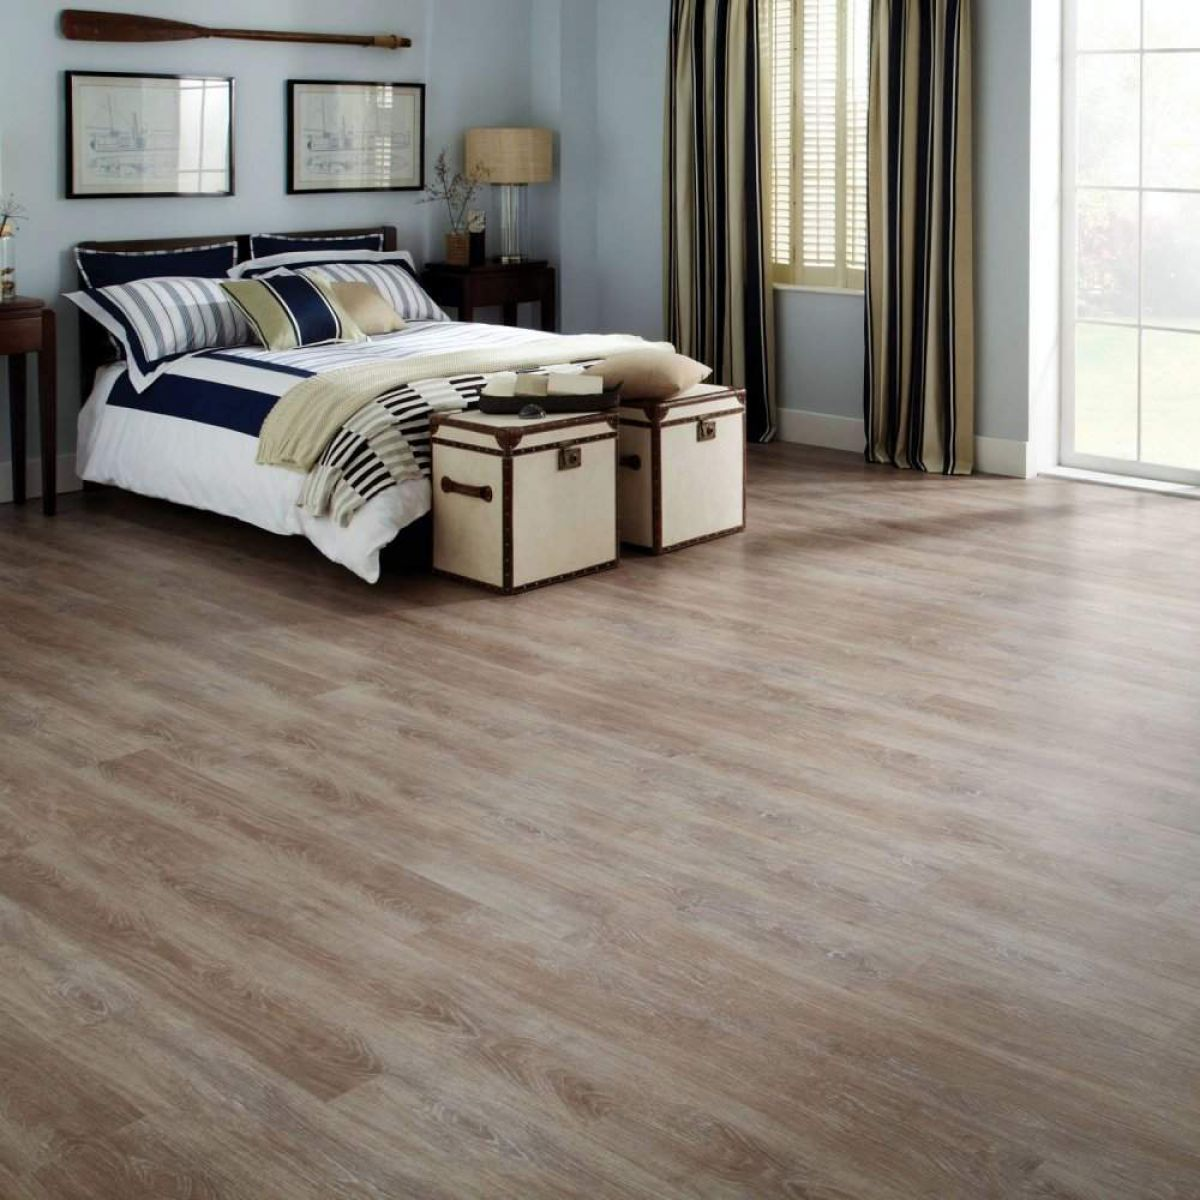 Karndean Palio Looselay Vinyl Wood Flooring Uk Bathrooms